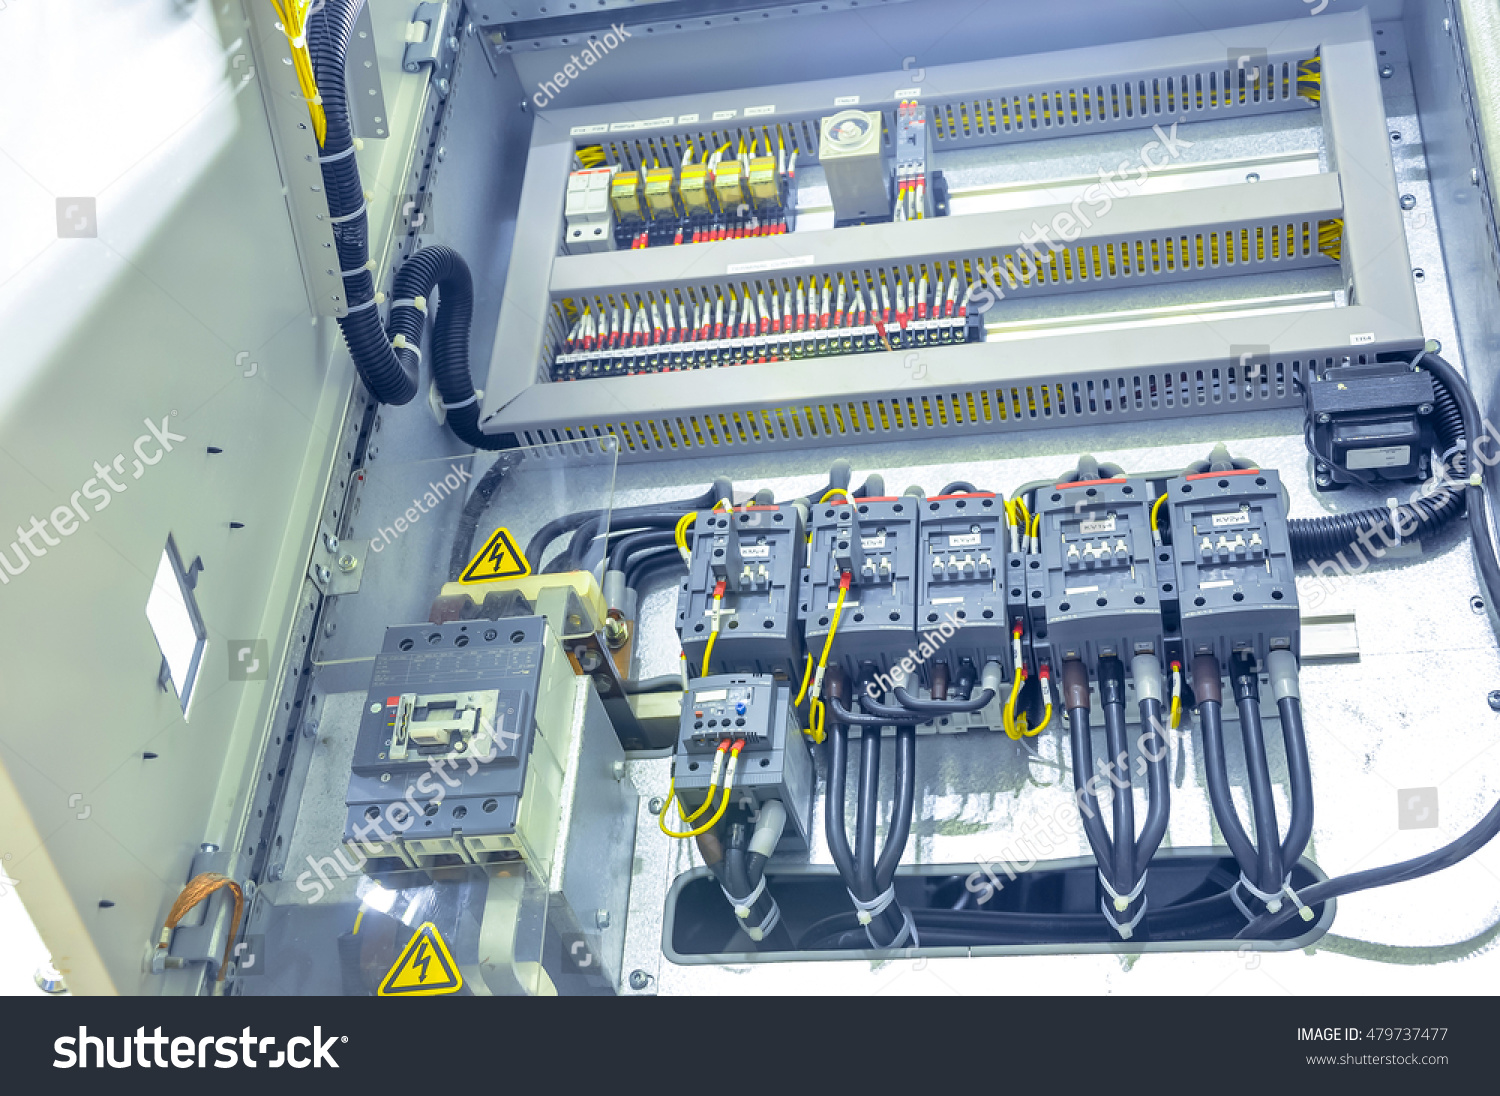 Electrical Distribution Panel Grey Many Switch Stock Photo (Royalty ...